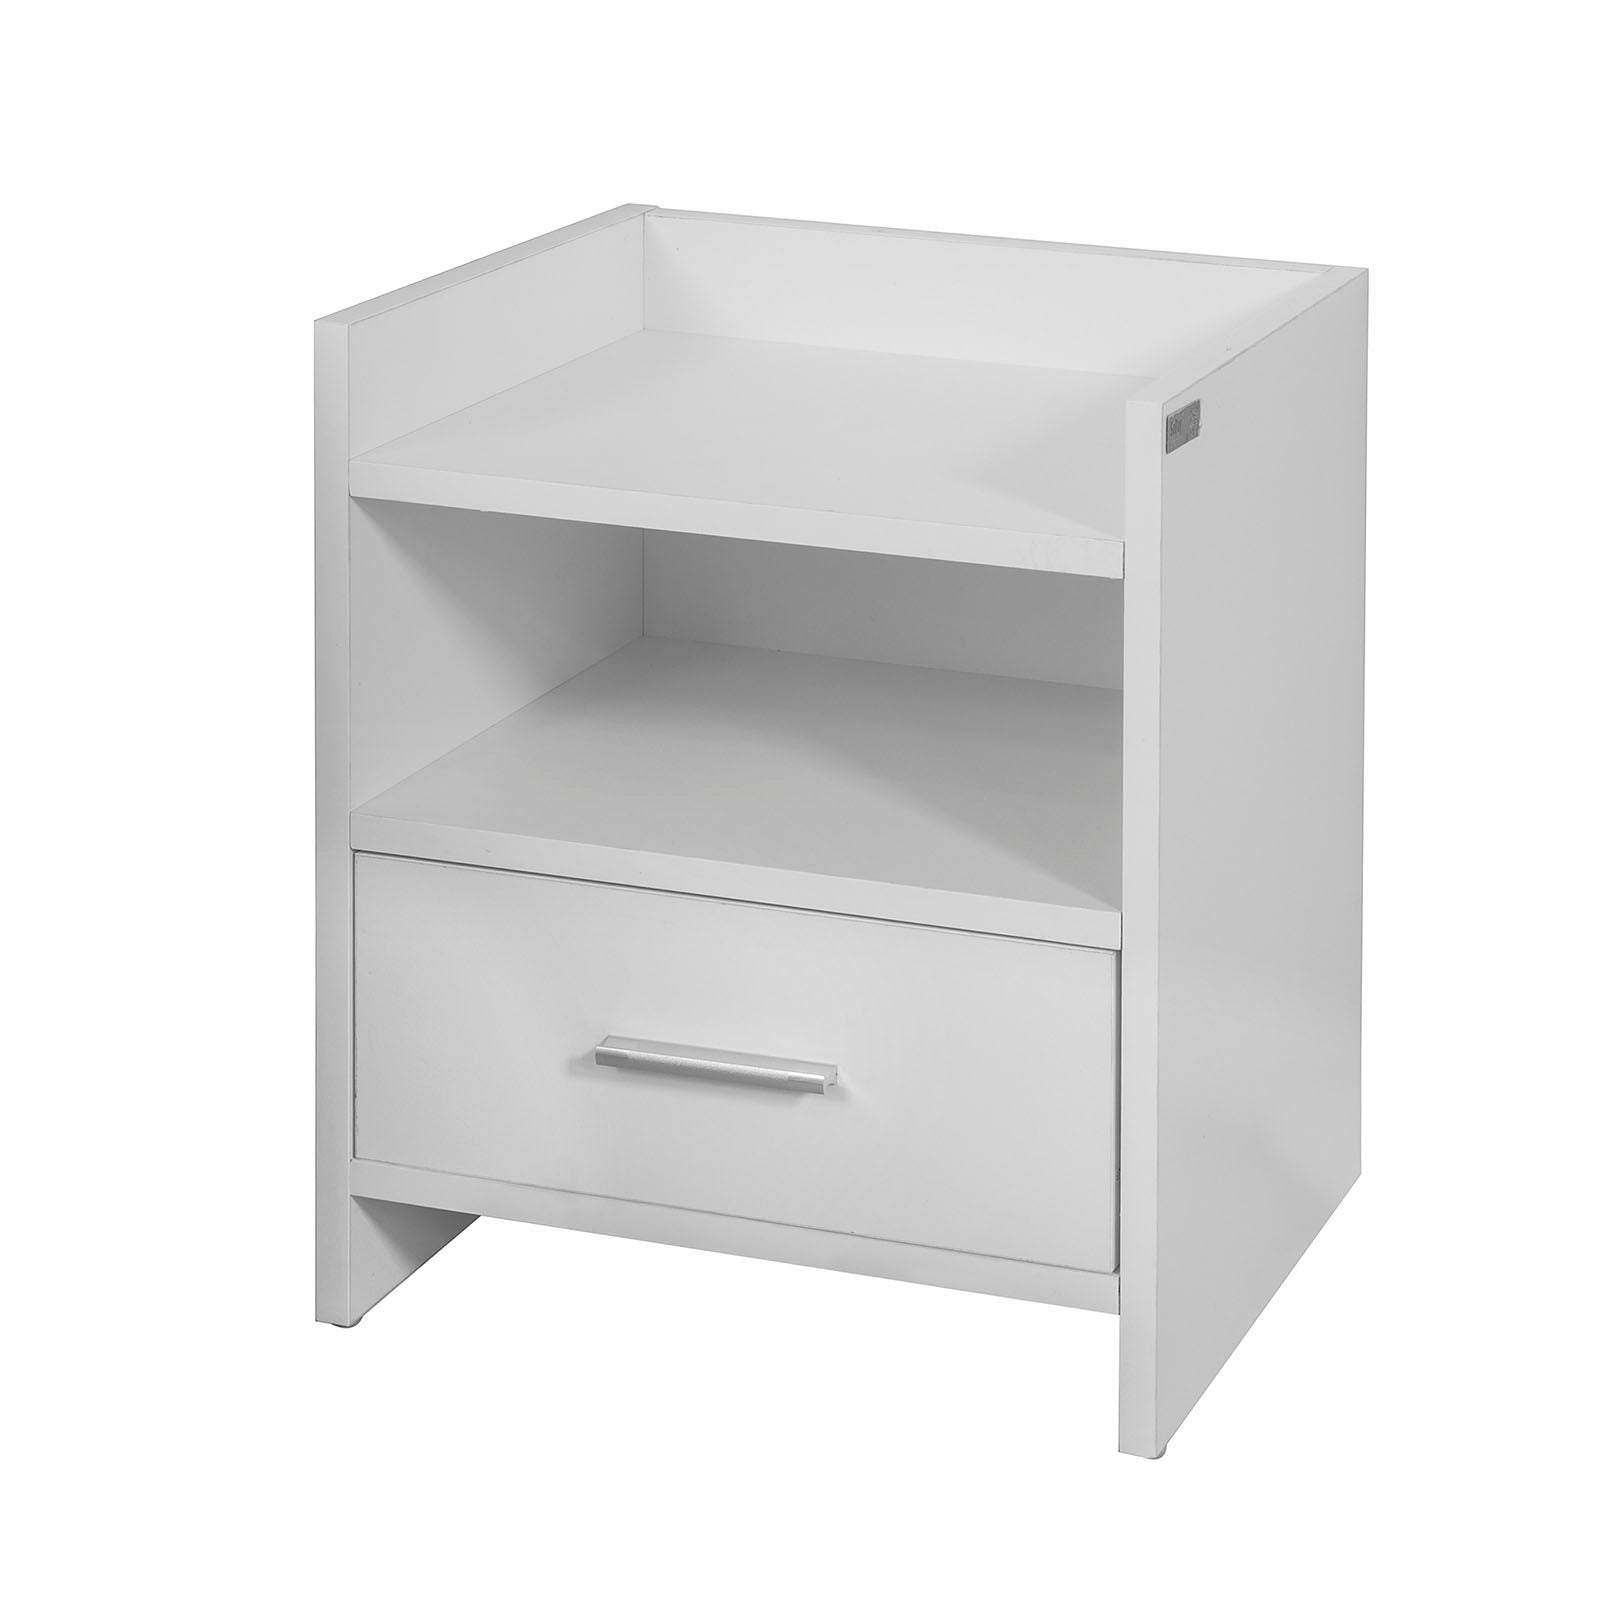 SoBuy Bedside Table Small Bedside Table White Sofa With Drawer Fbt66-W